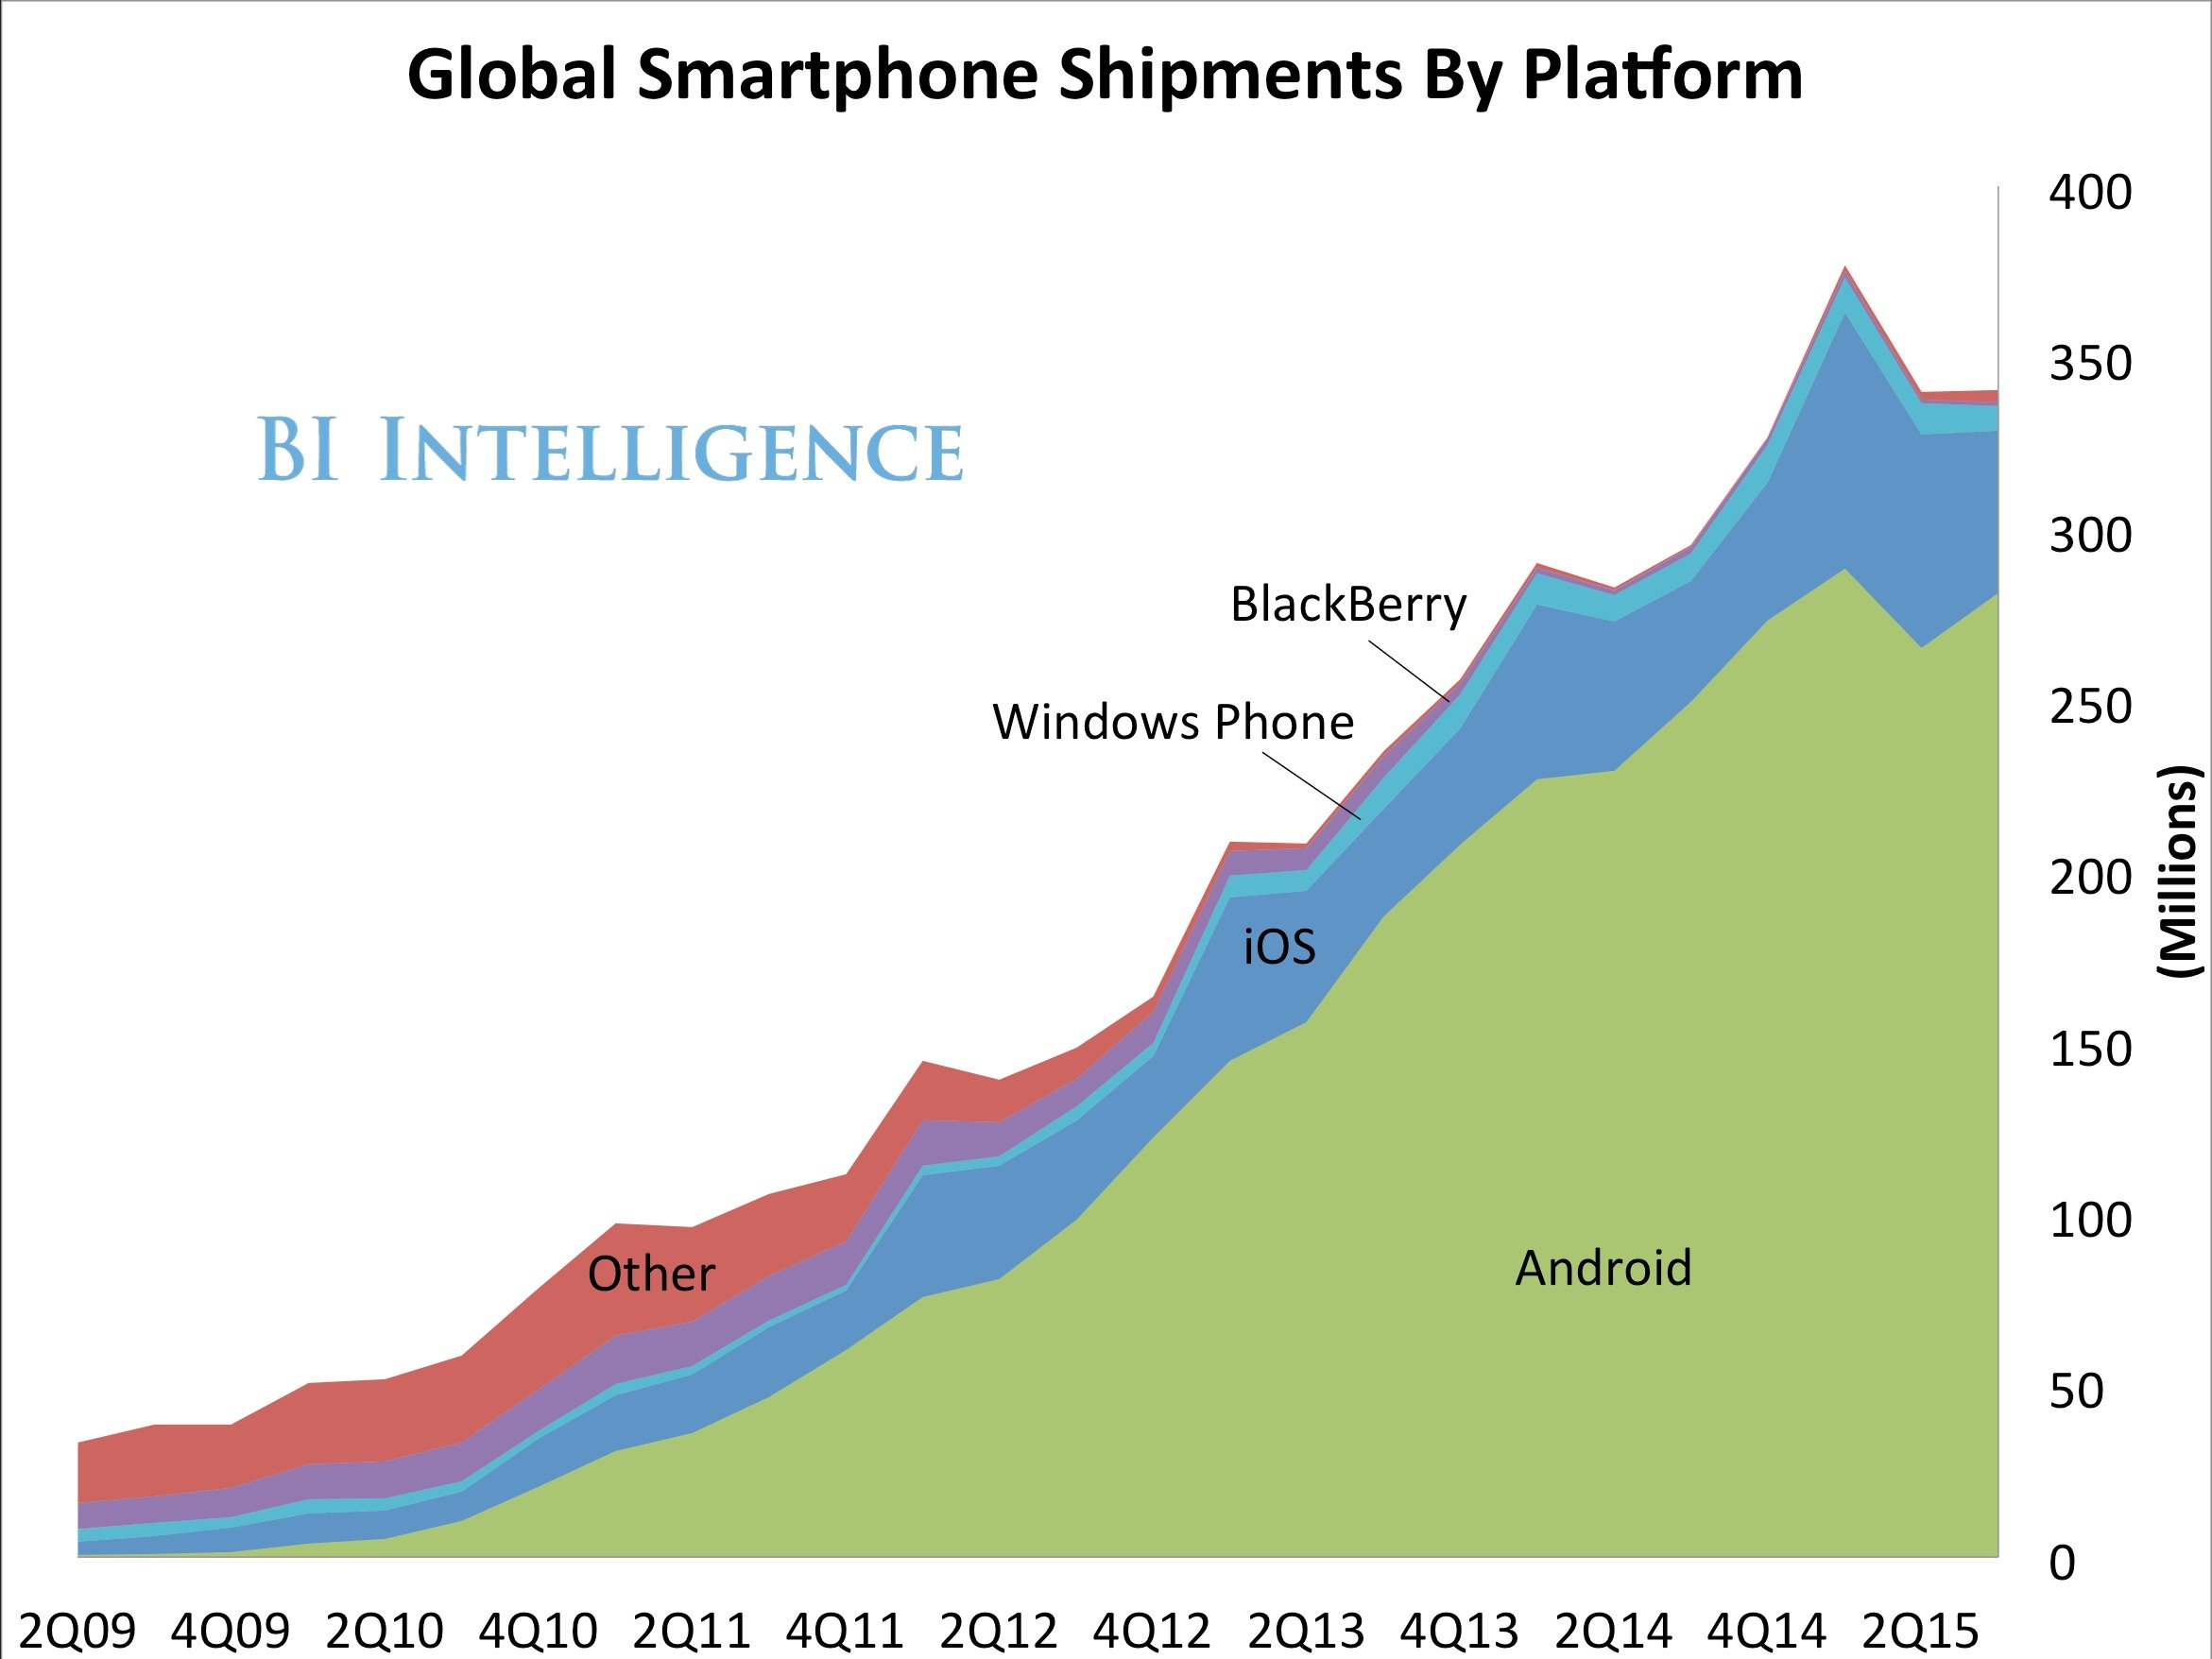 platform-shipments-global.png